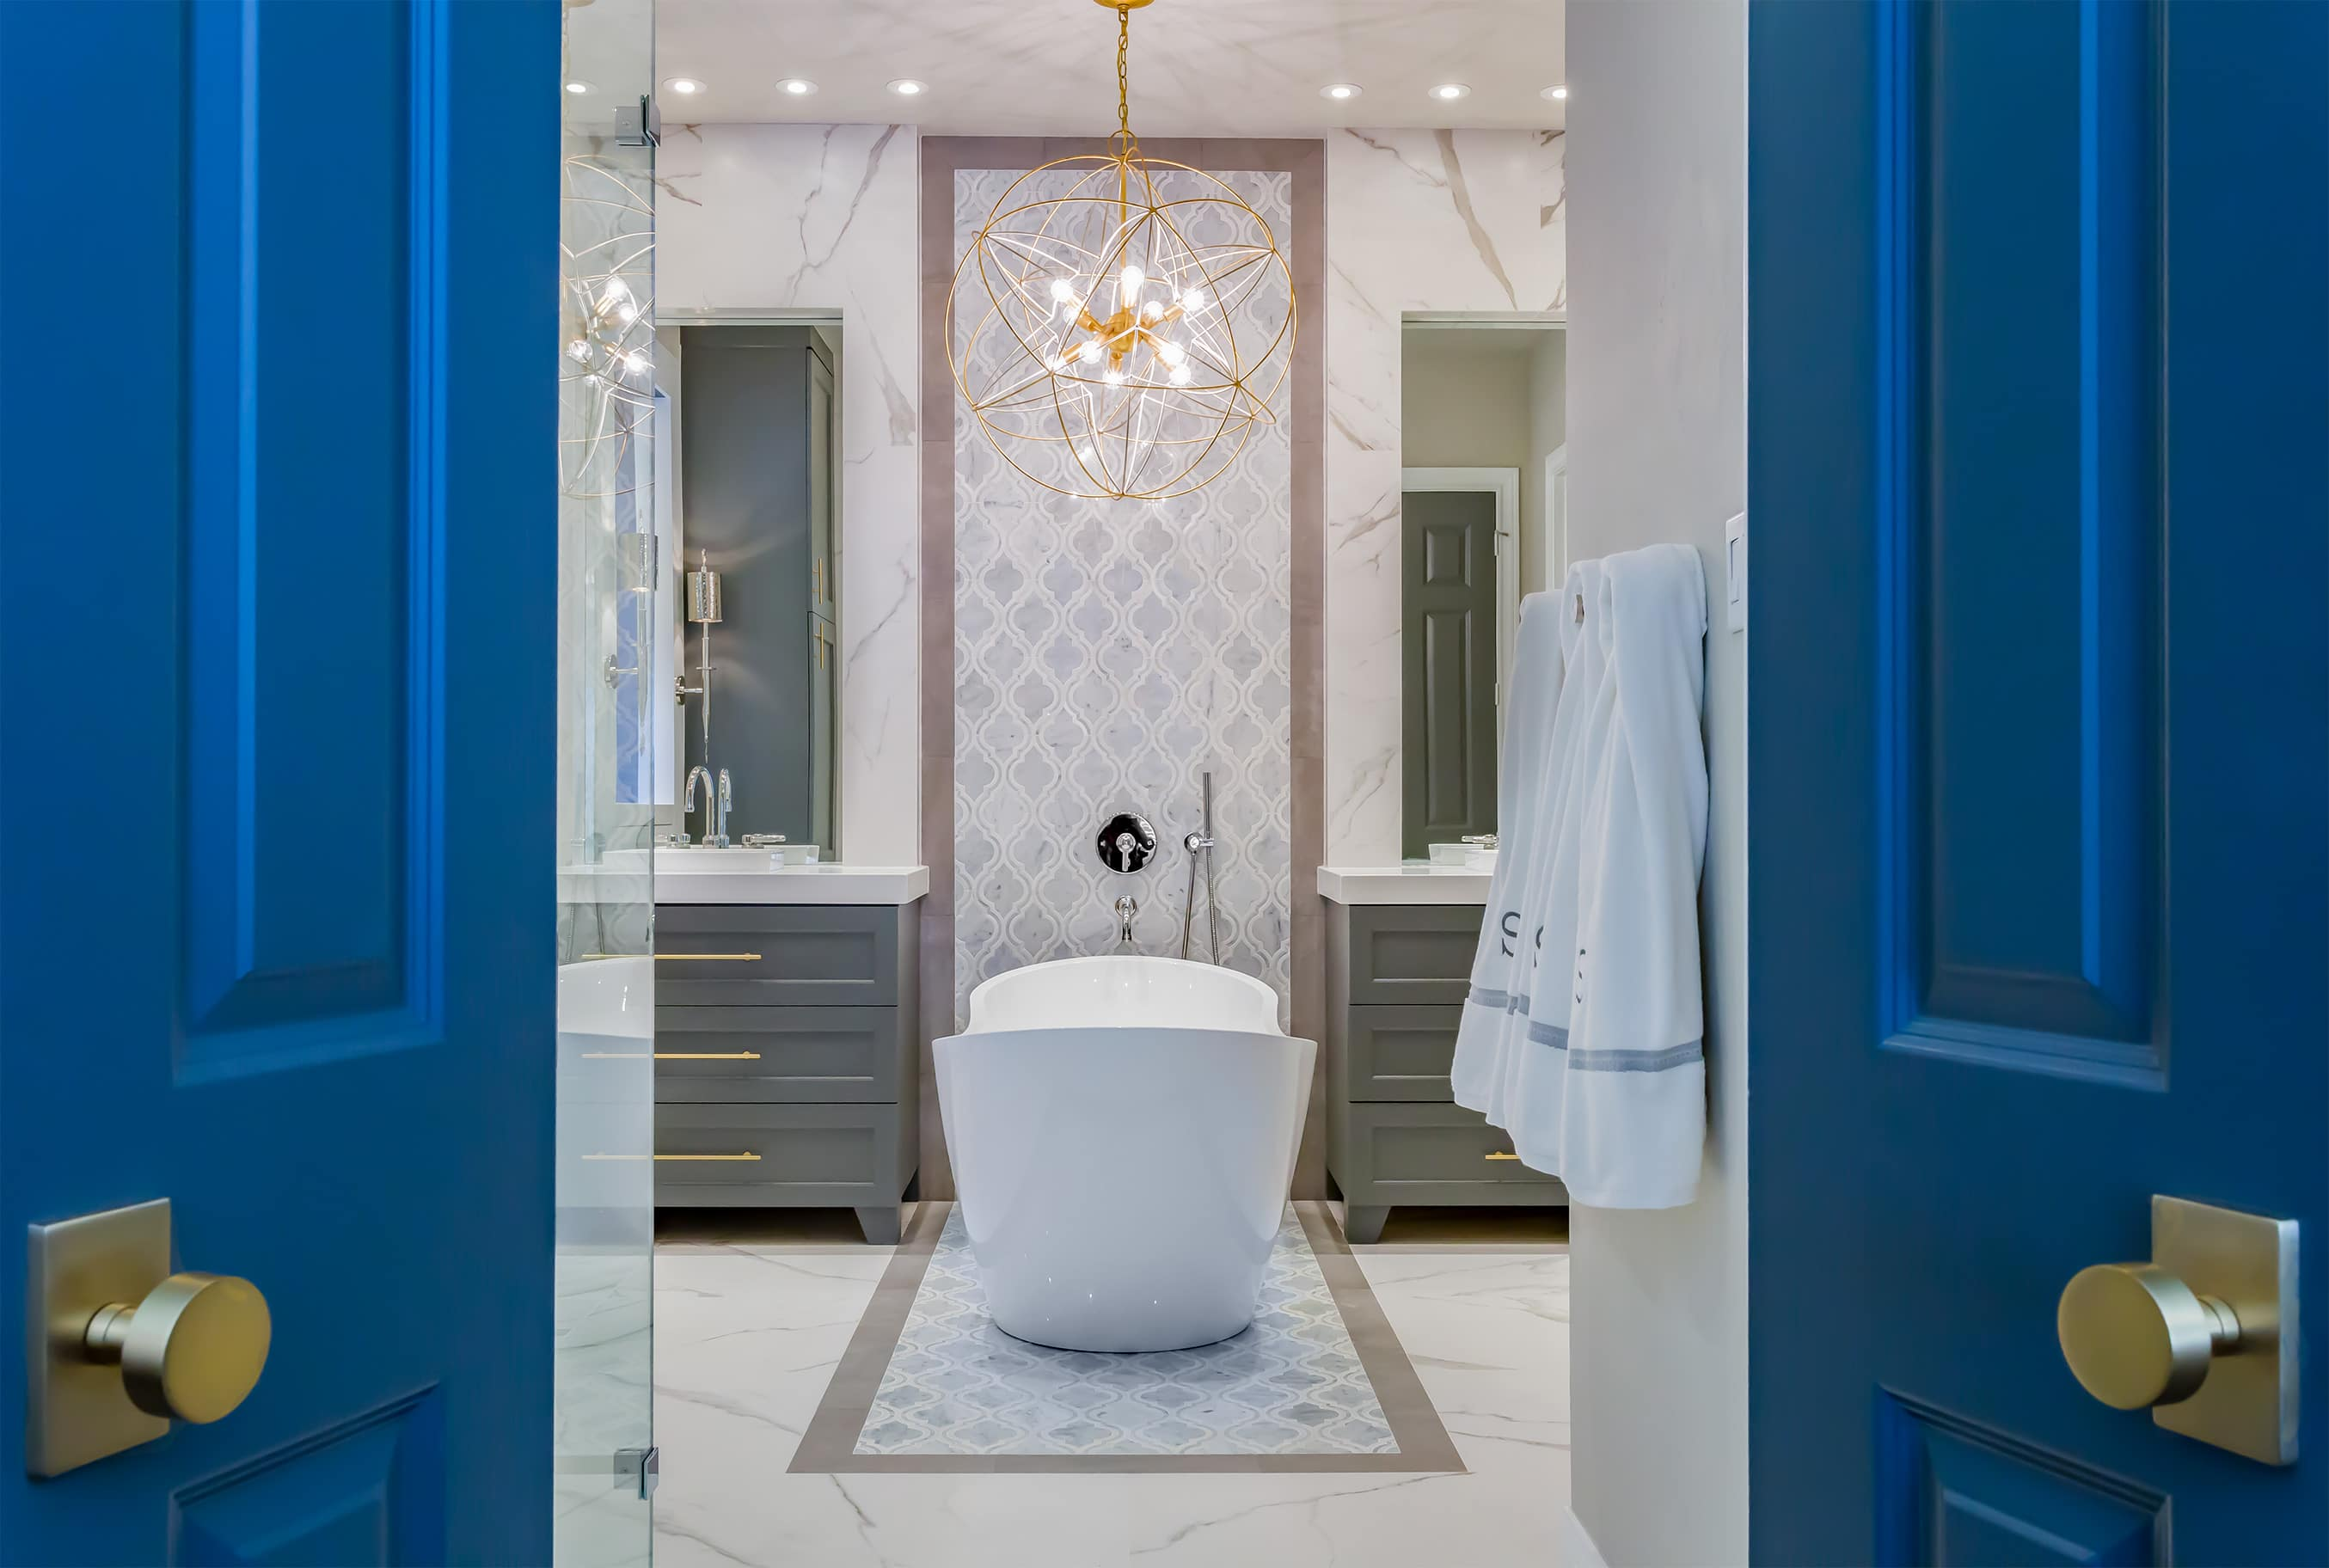 master bathroom renovation gold gray cobalt spring valley houston tx 2016 - Houston Tx Bathroom Remodeling